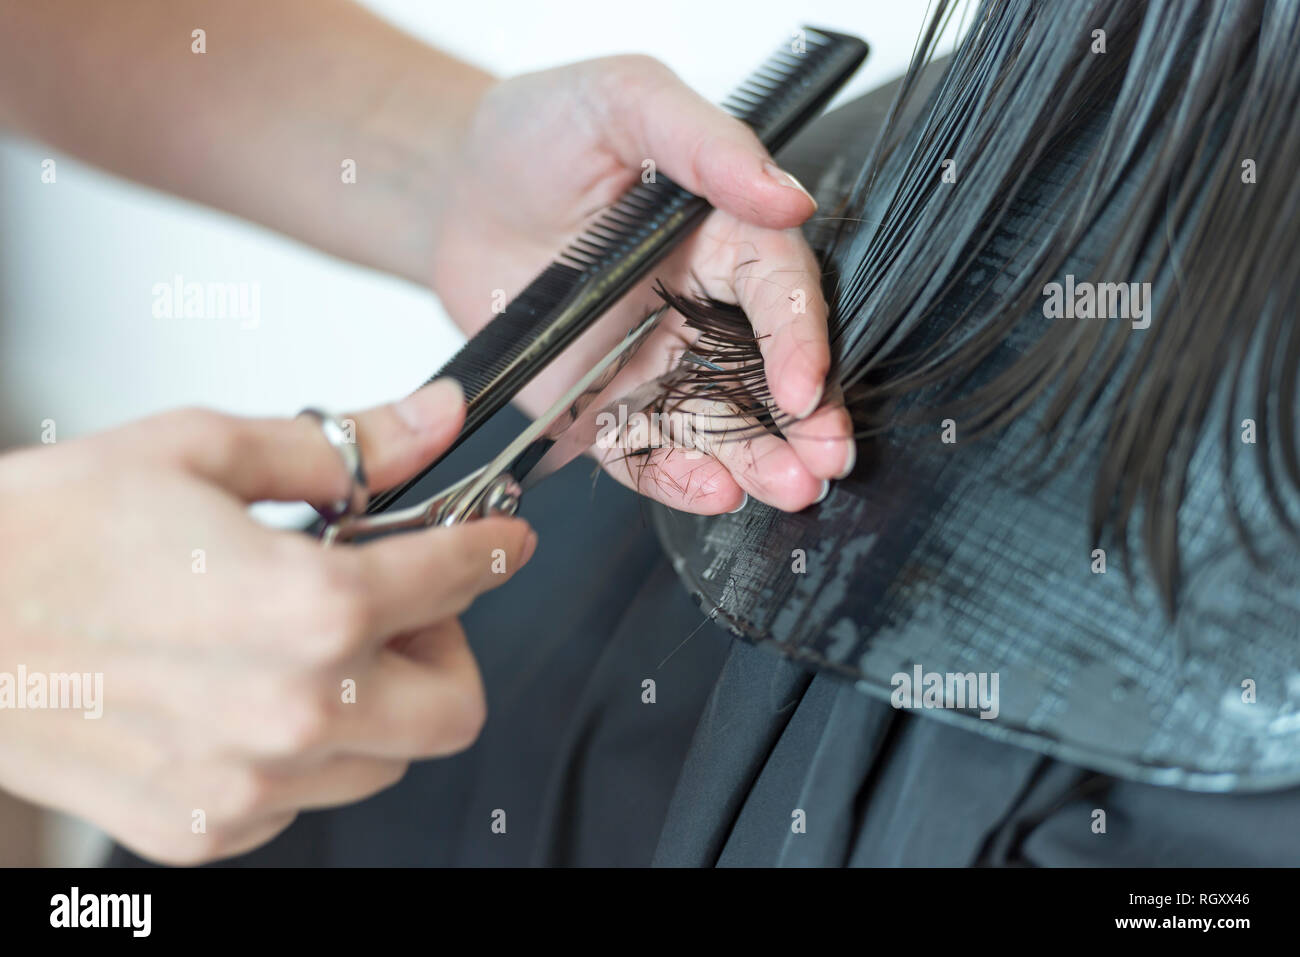 Woman Cutting Hair in a Hairdresser Salon. - Stock Image